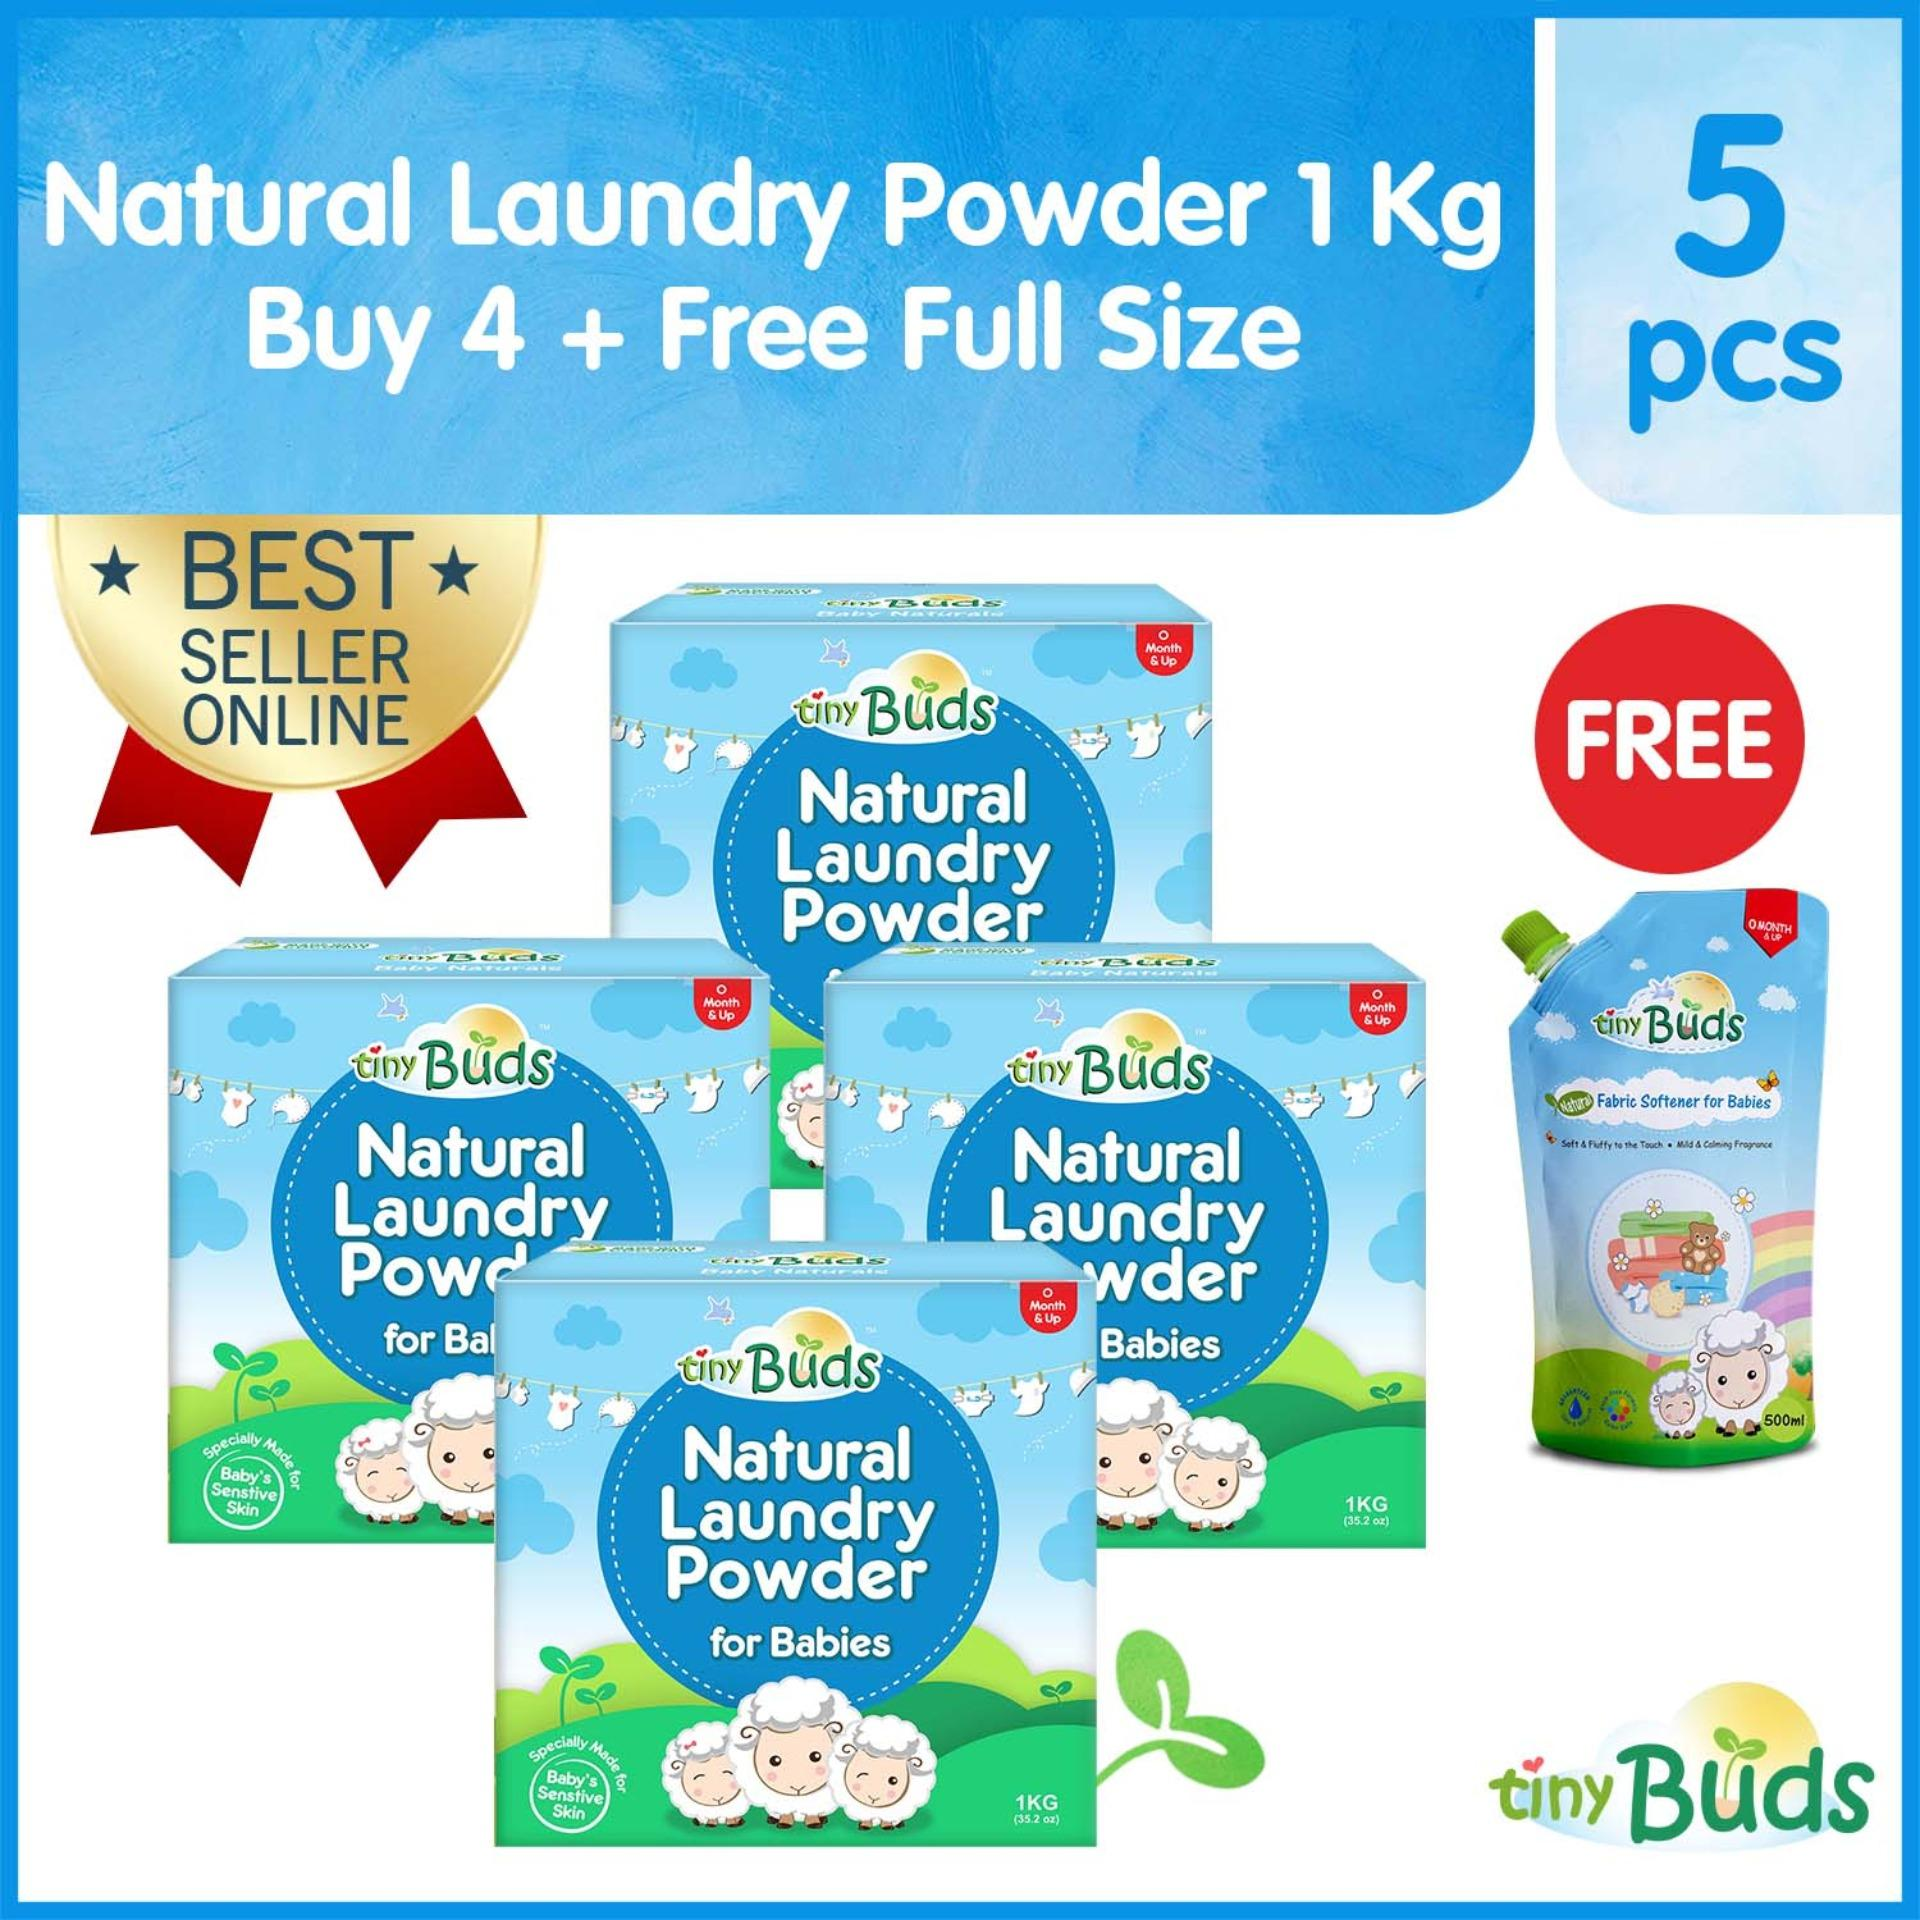 Philippines Best Buy Detergent 01 11 2018 Cycles Mild Laundry Powder 1000gr Tiny Buds Natural Baby Set Of 4 With Free Fabric Softener For Hand Wash Washing Machine